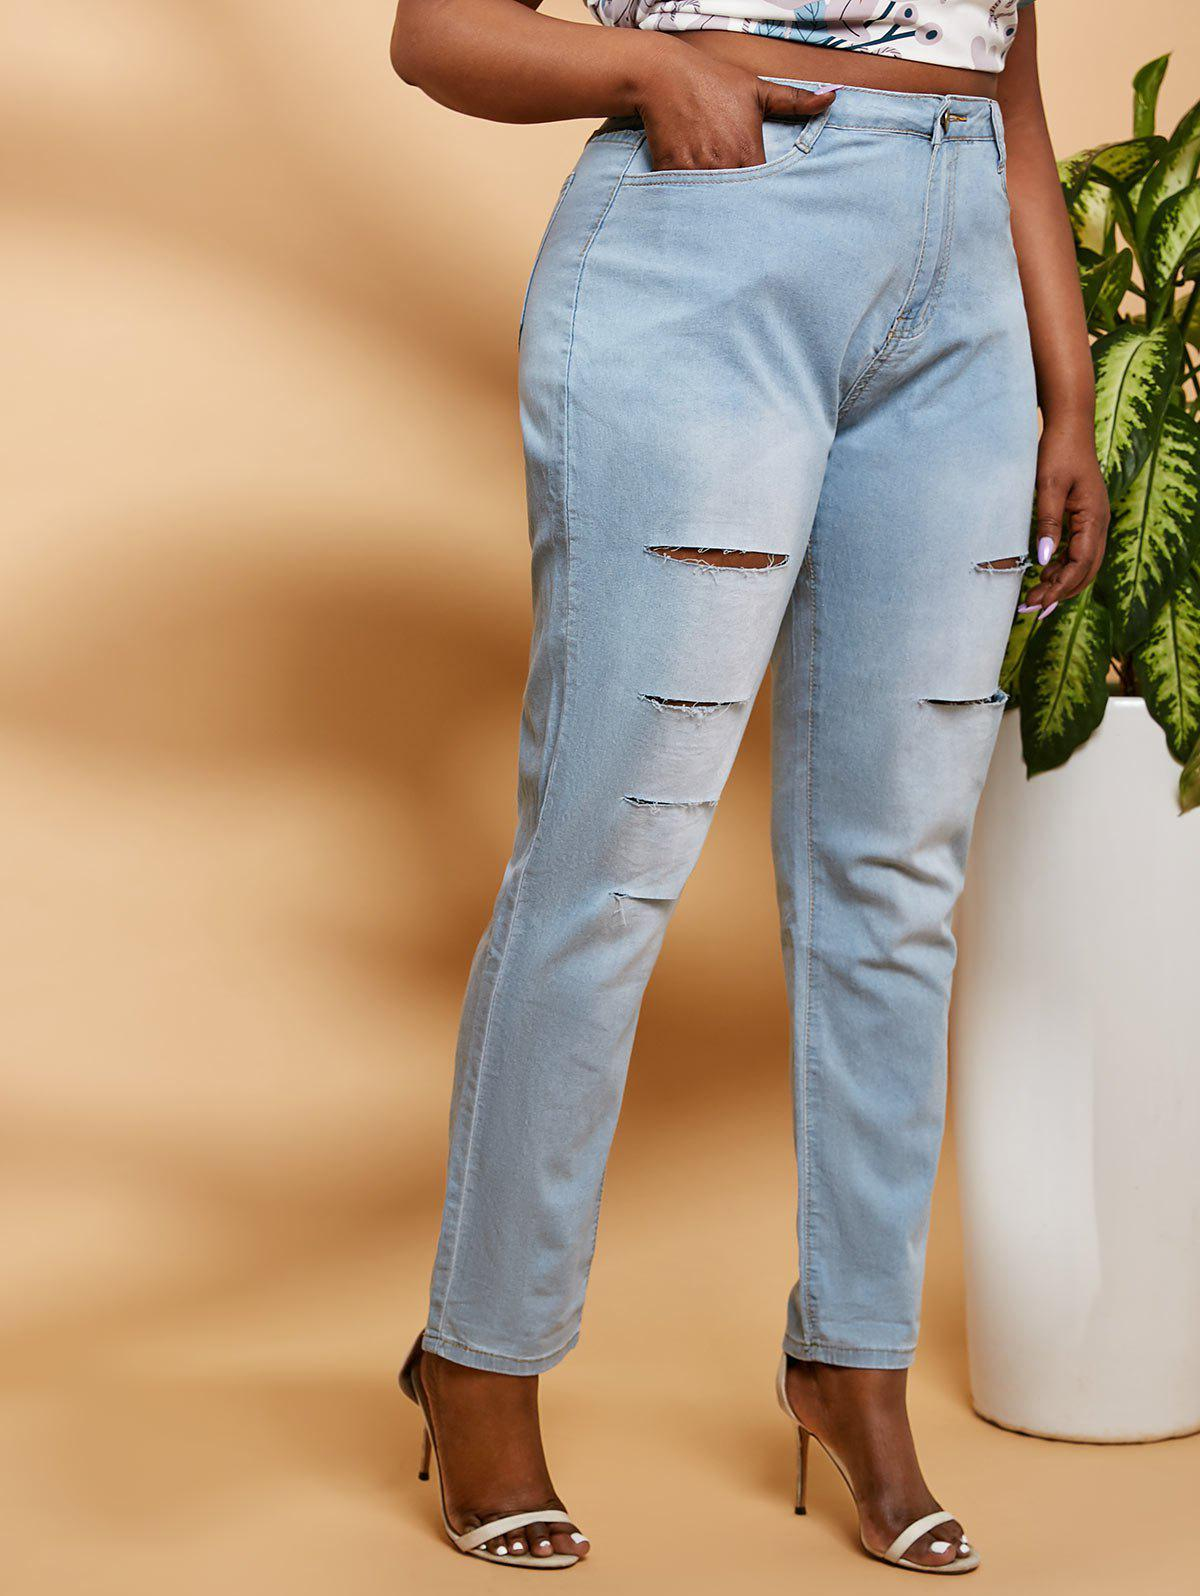 Ladder Ripped Mid Rise Plus Size Skinny Jeans - LIGHT BLUE 2XL